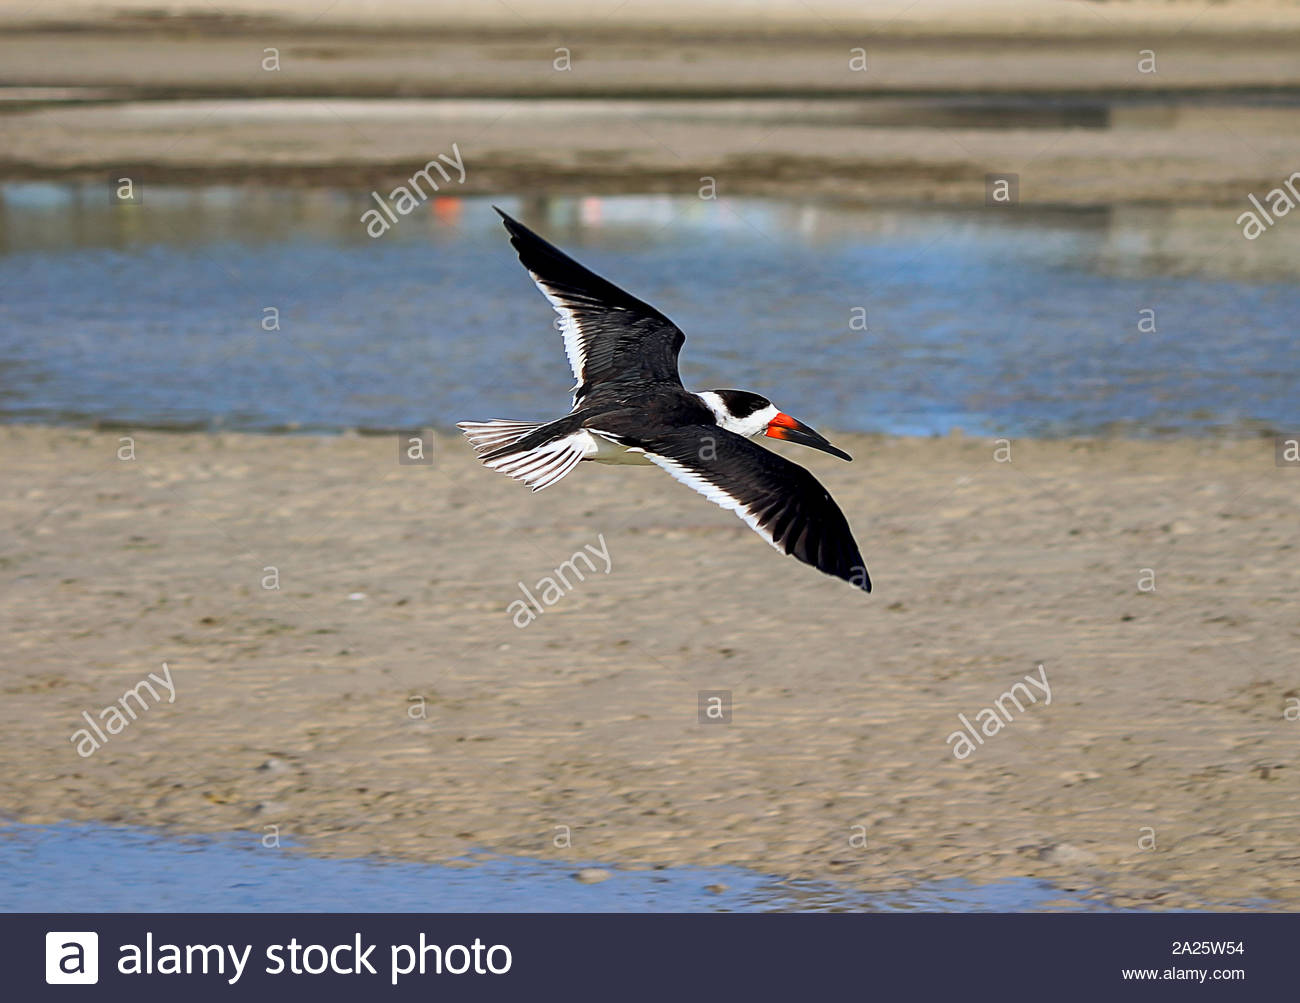 Black skimmer (Rynchops niger) in flight over Tampa Bay, east of Florida, USA Stock Photo